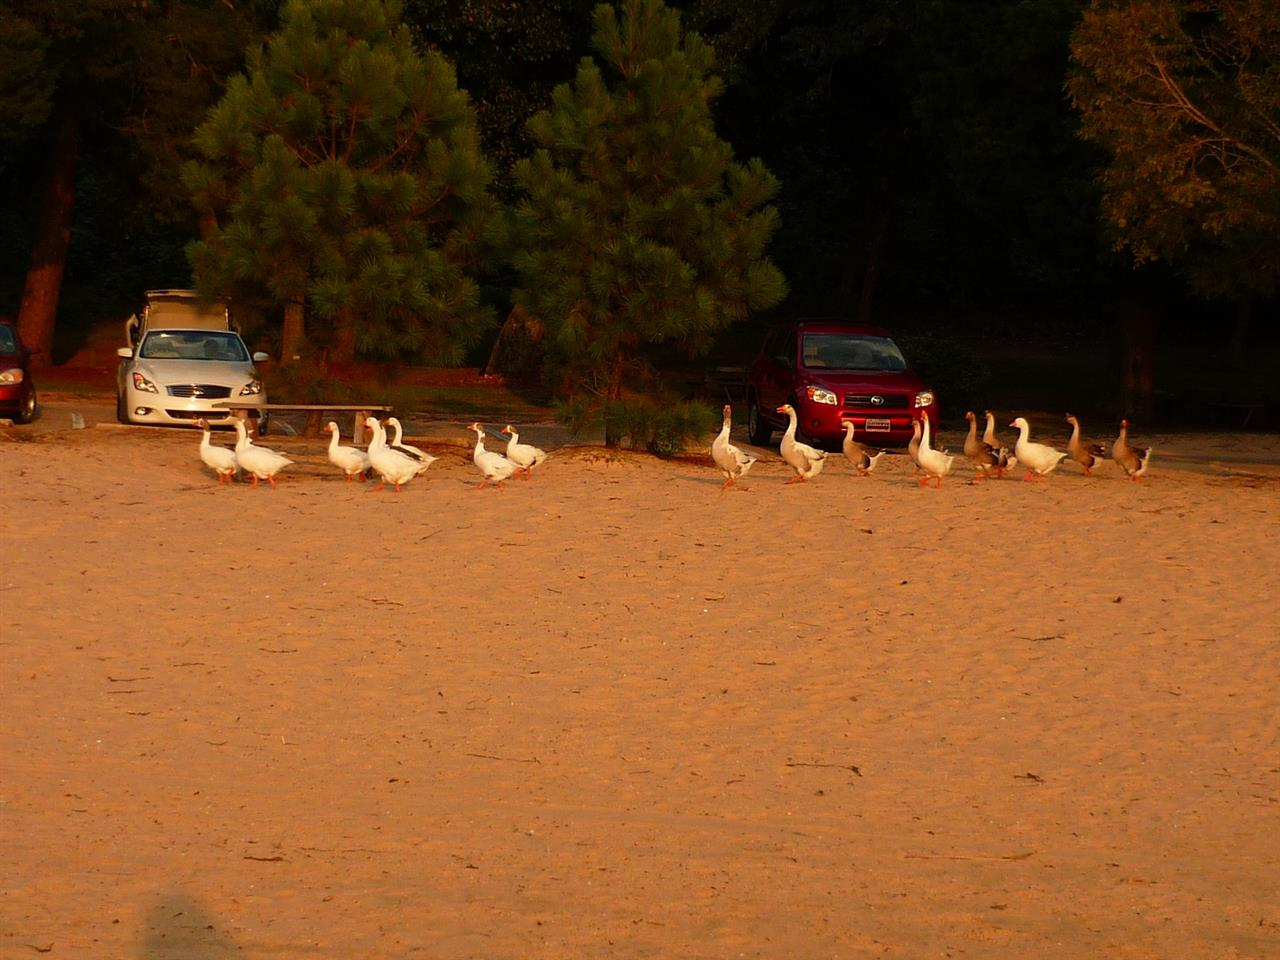 Ducks, North Beach Park, Fairhope, AL by Casey P